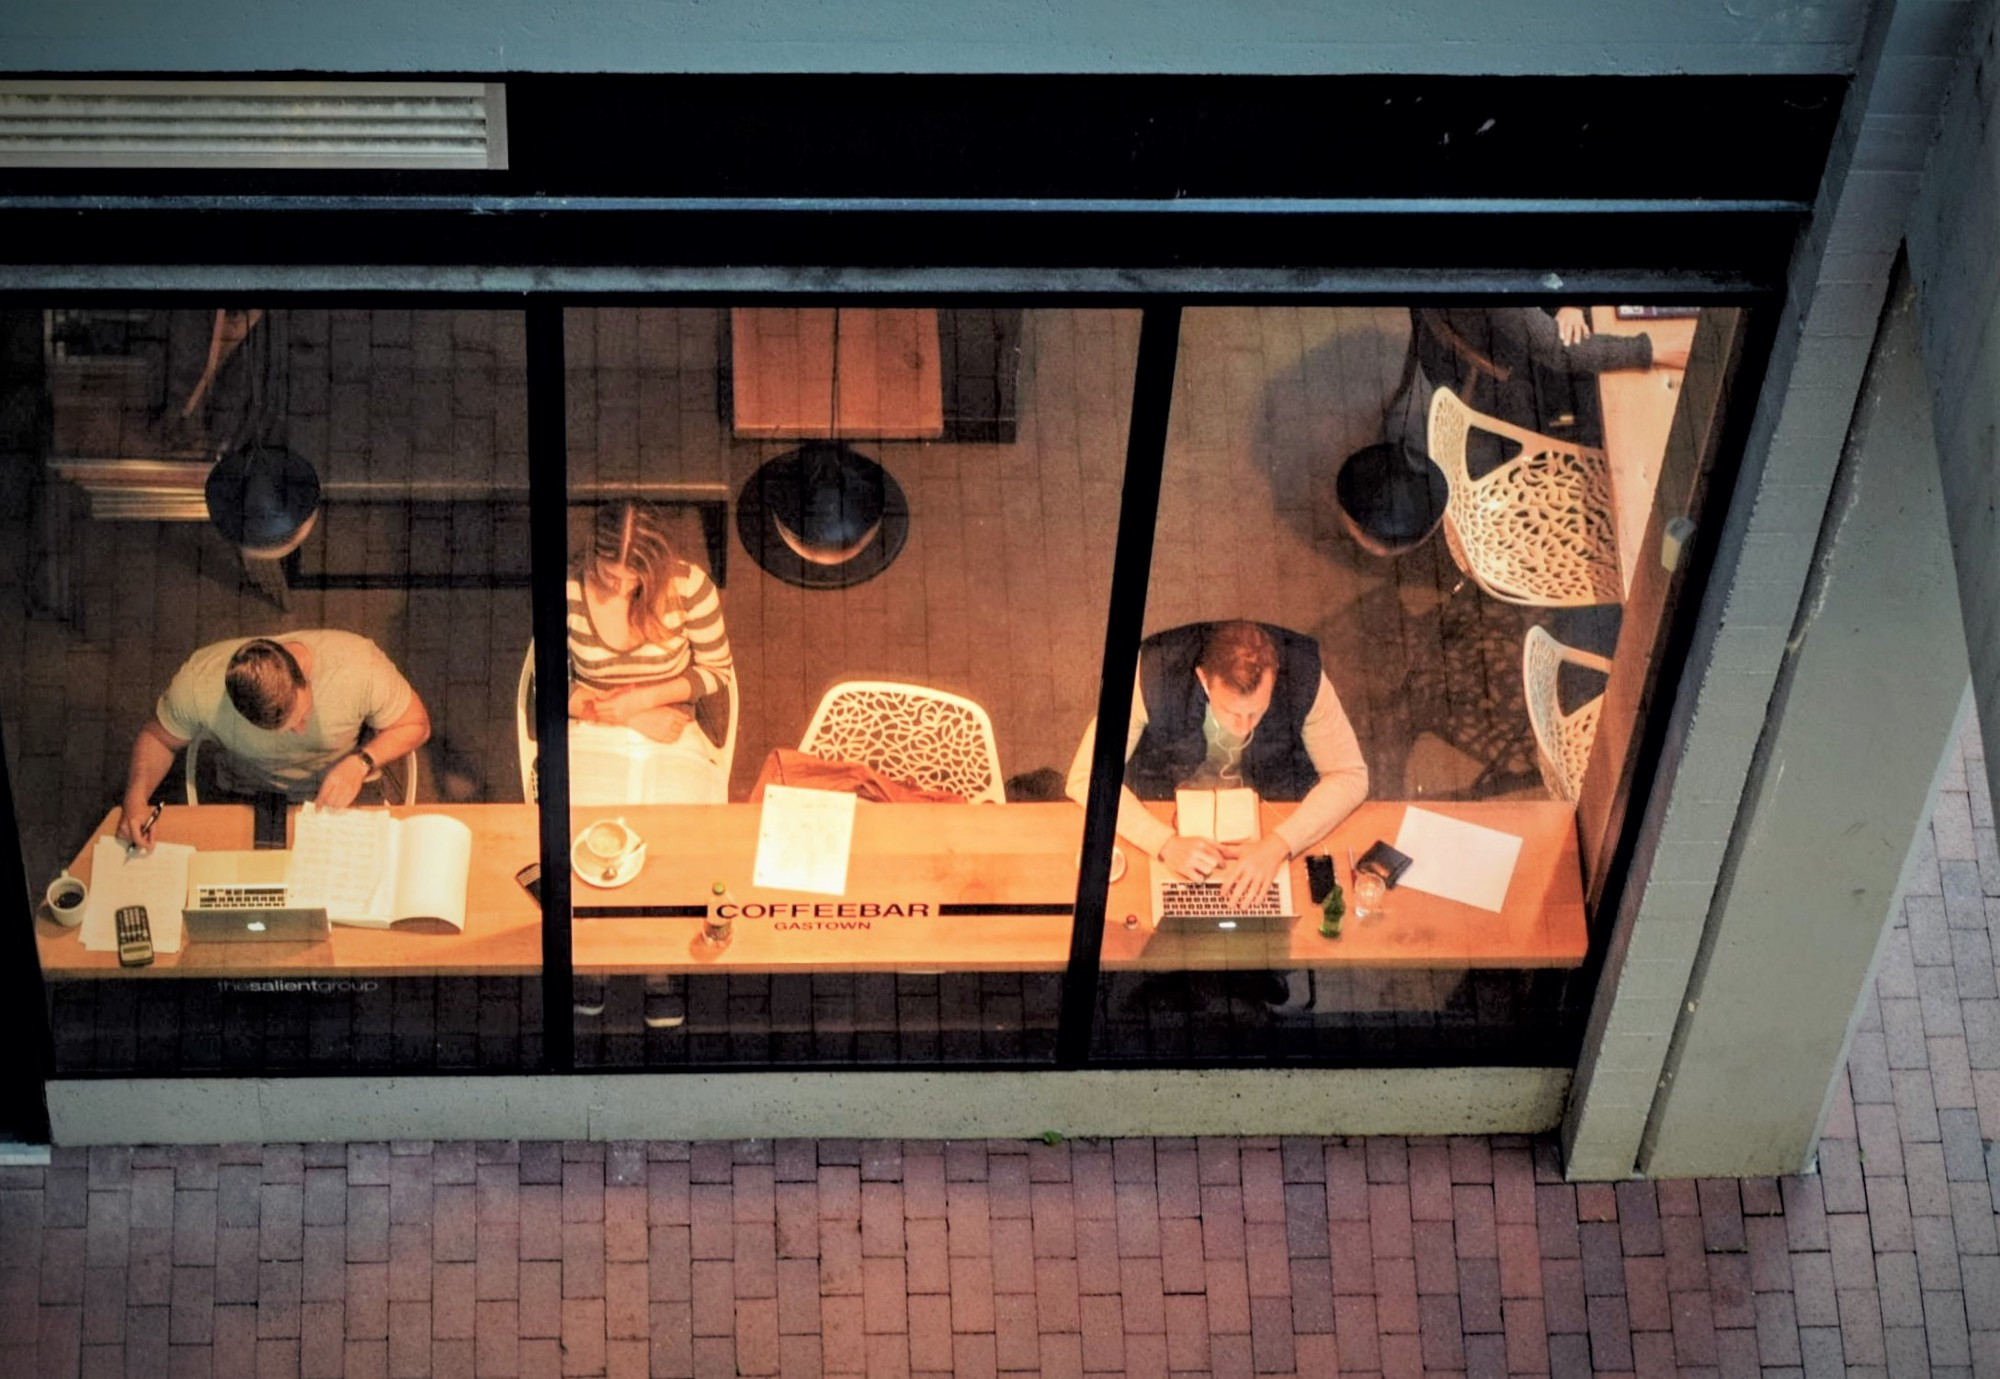 birdseye view through large windows of people working at common desk